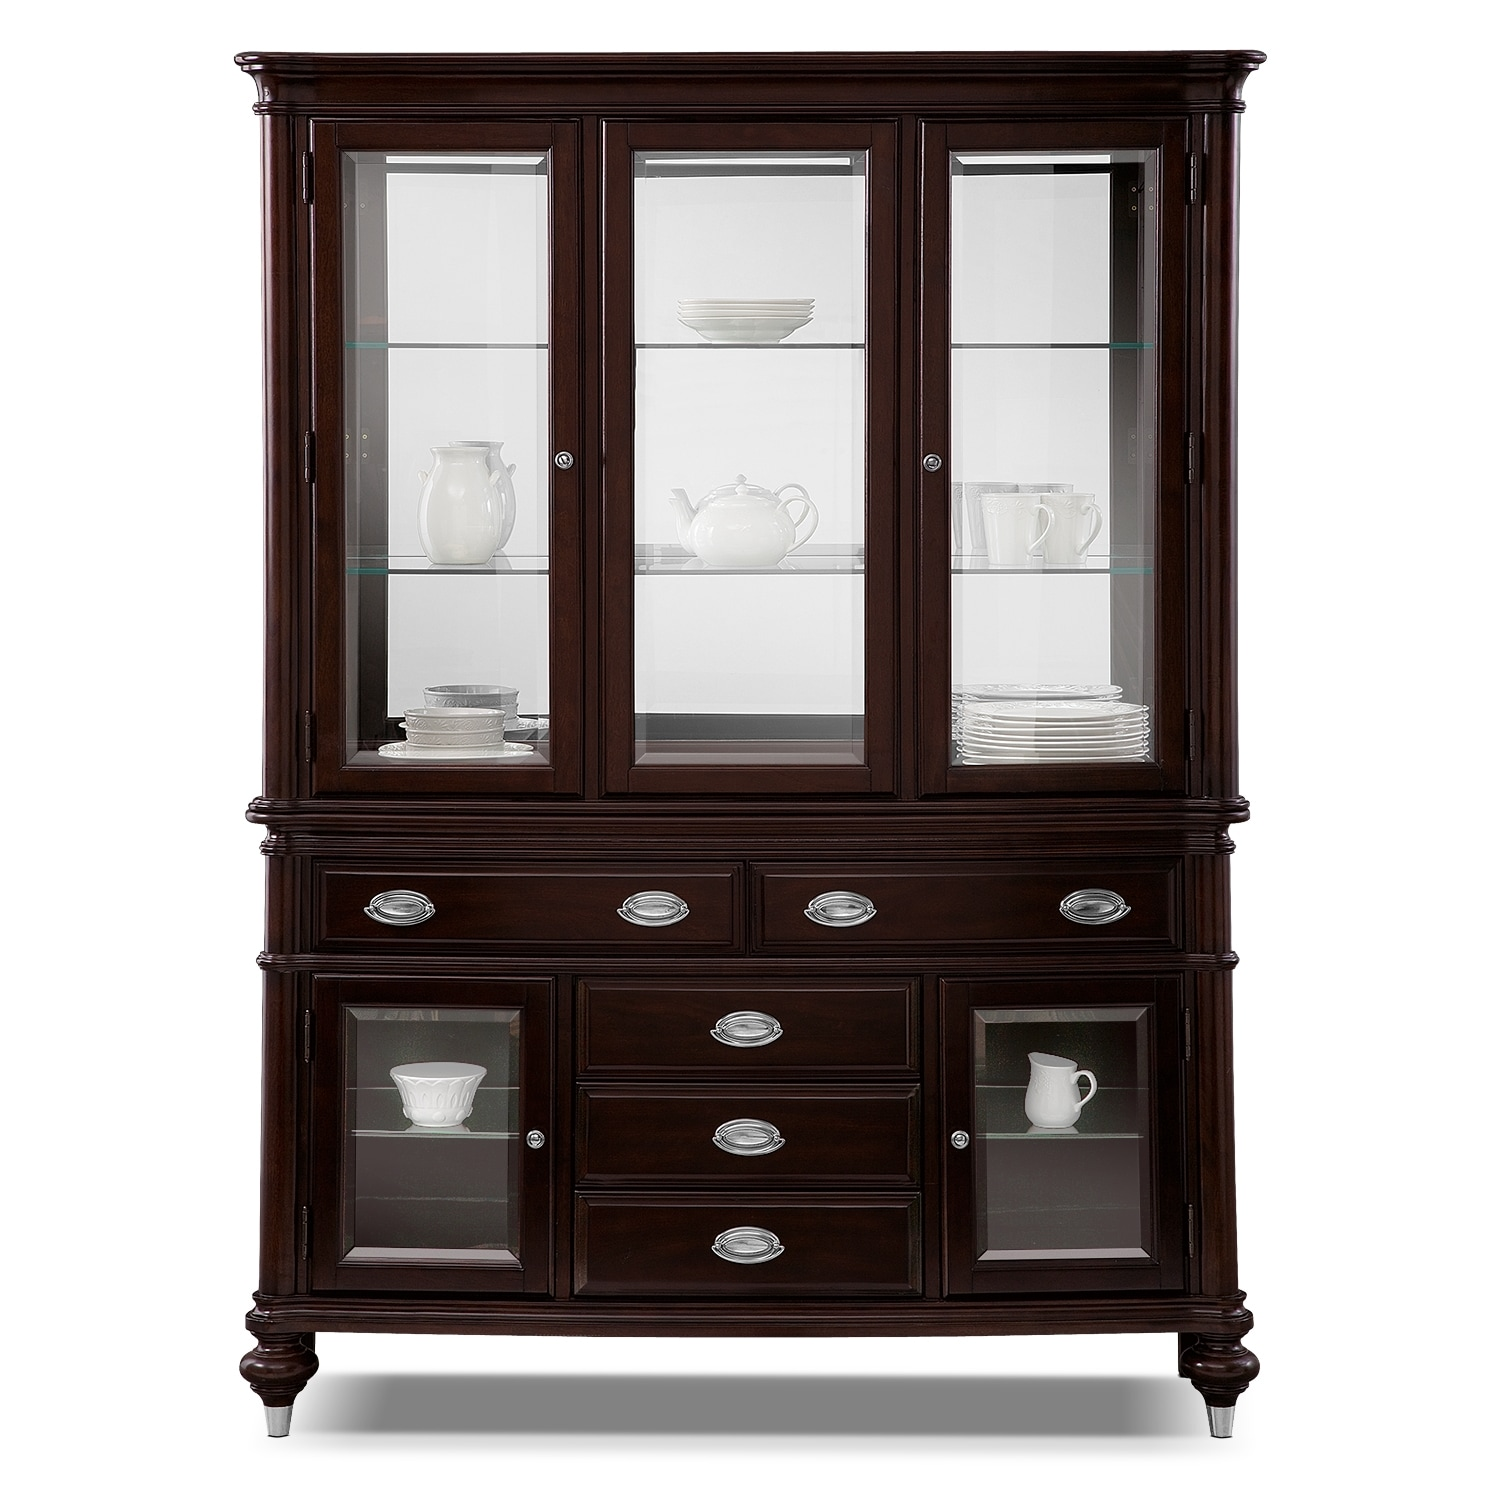 Dining Room Buffet Hutch: Esquire Buffet And Hutch - Cherry